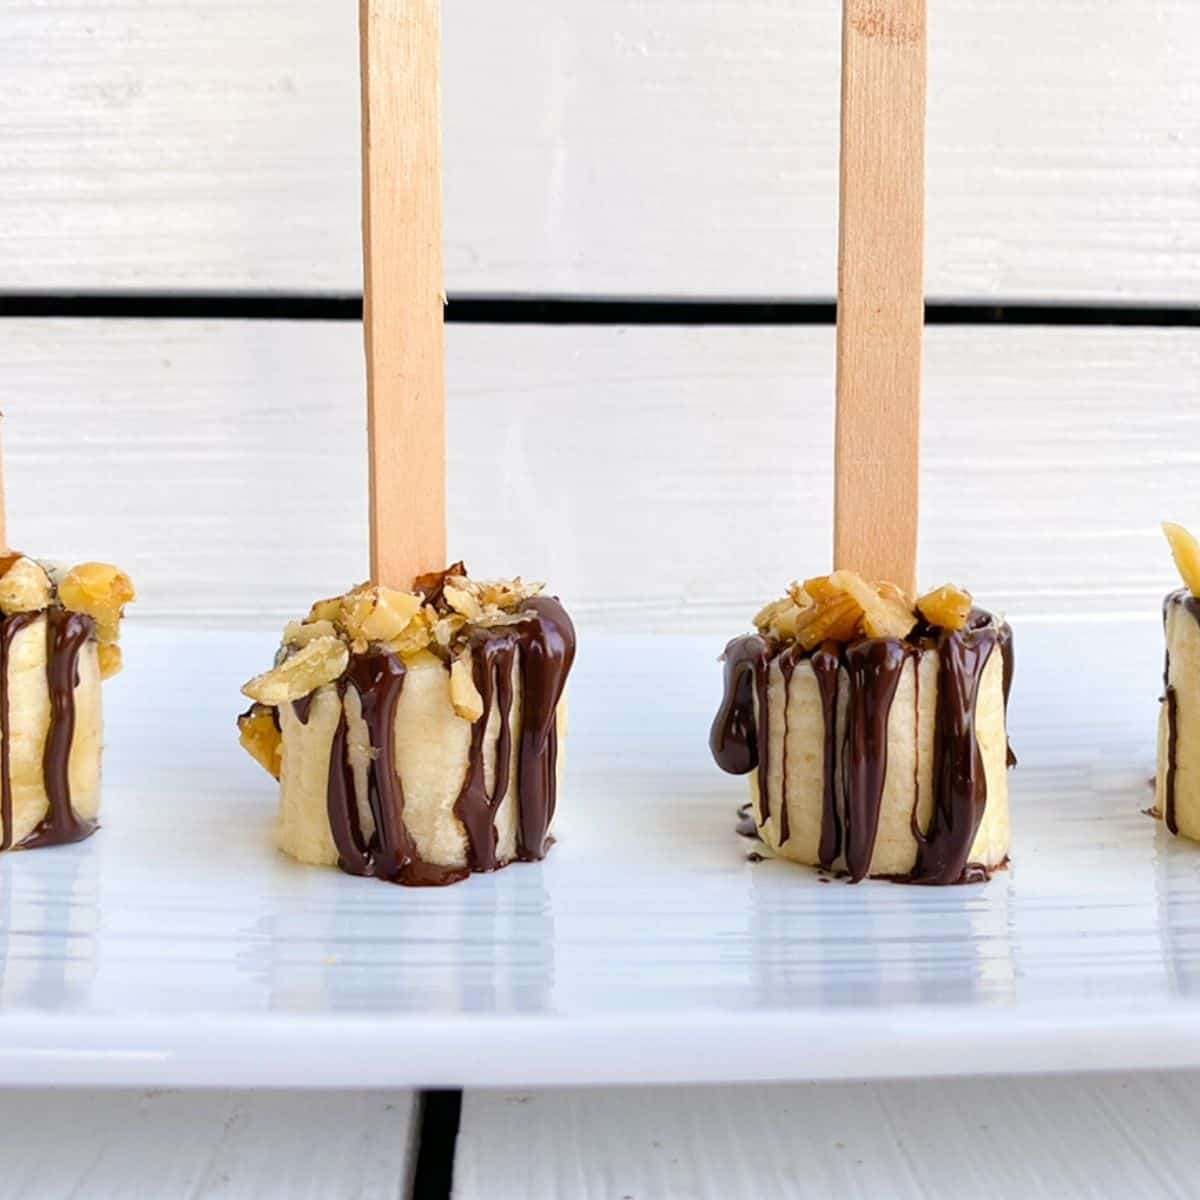 banana slices on popsicles sticks dipped in chocolate with nuts